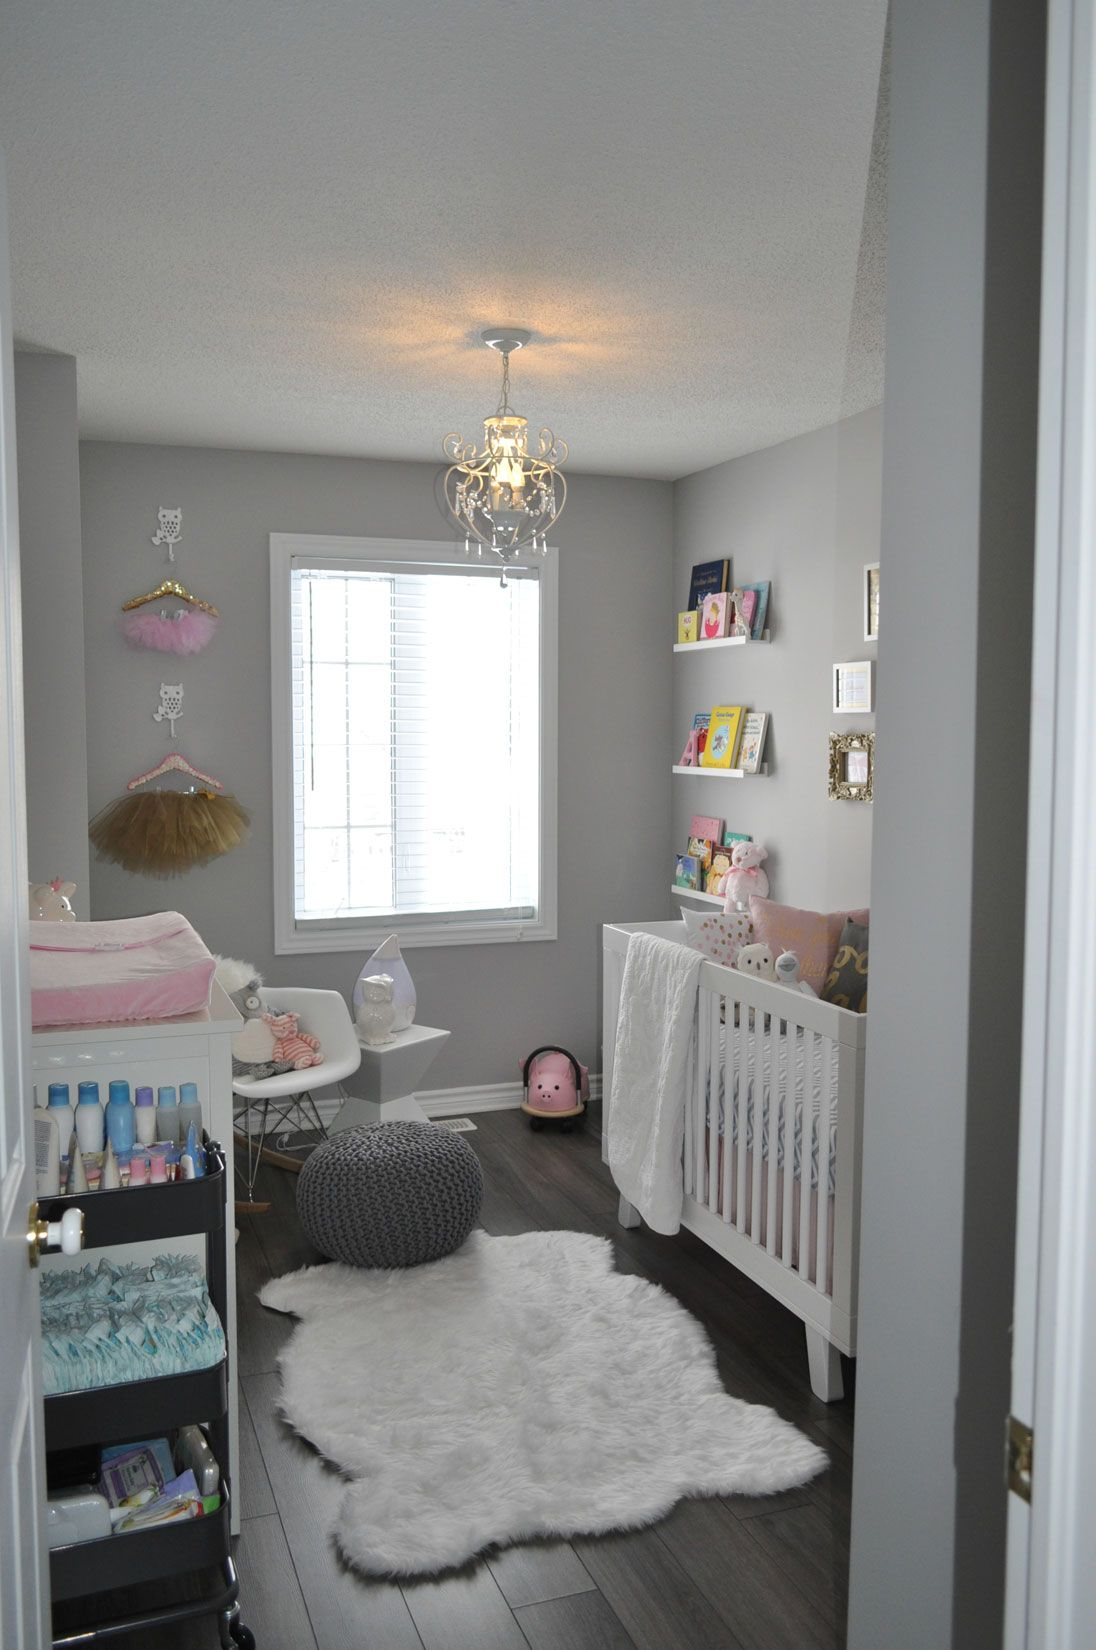 Furry Baby Bedroom: Decor Inspiration: A Pink, Gold, And Grey Nursery For A